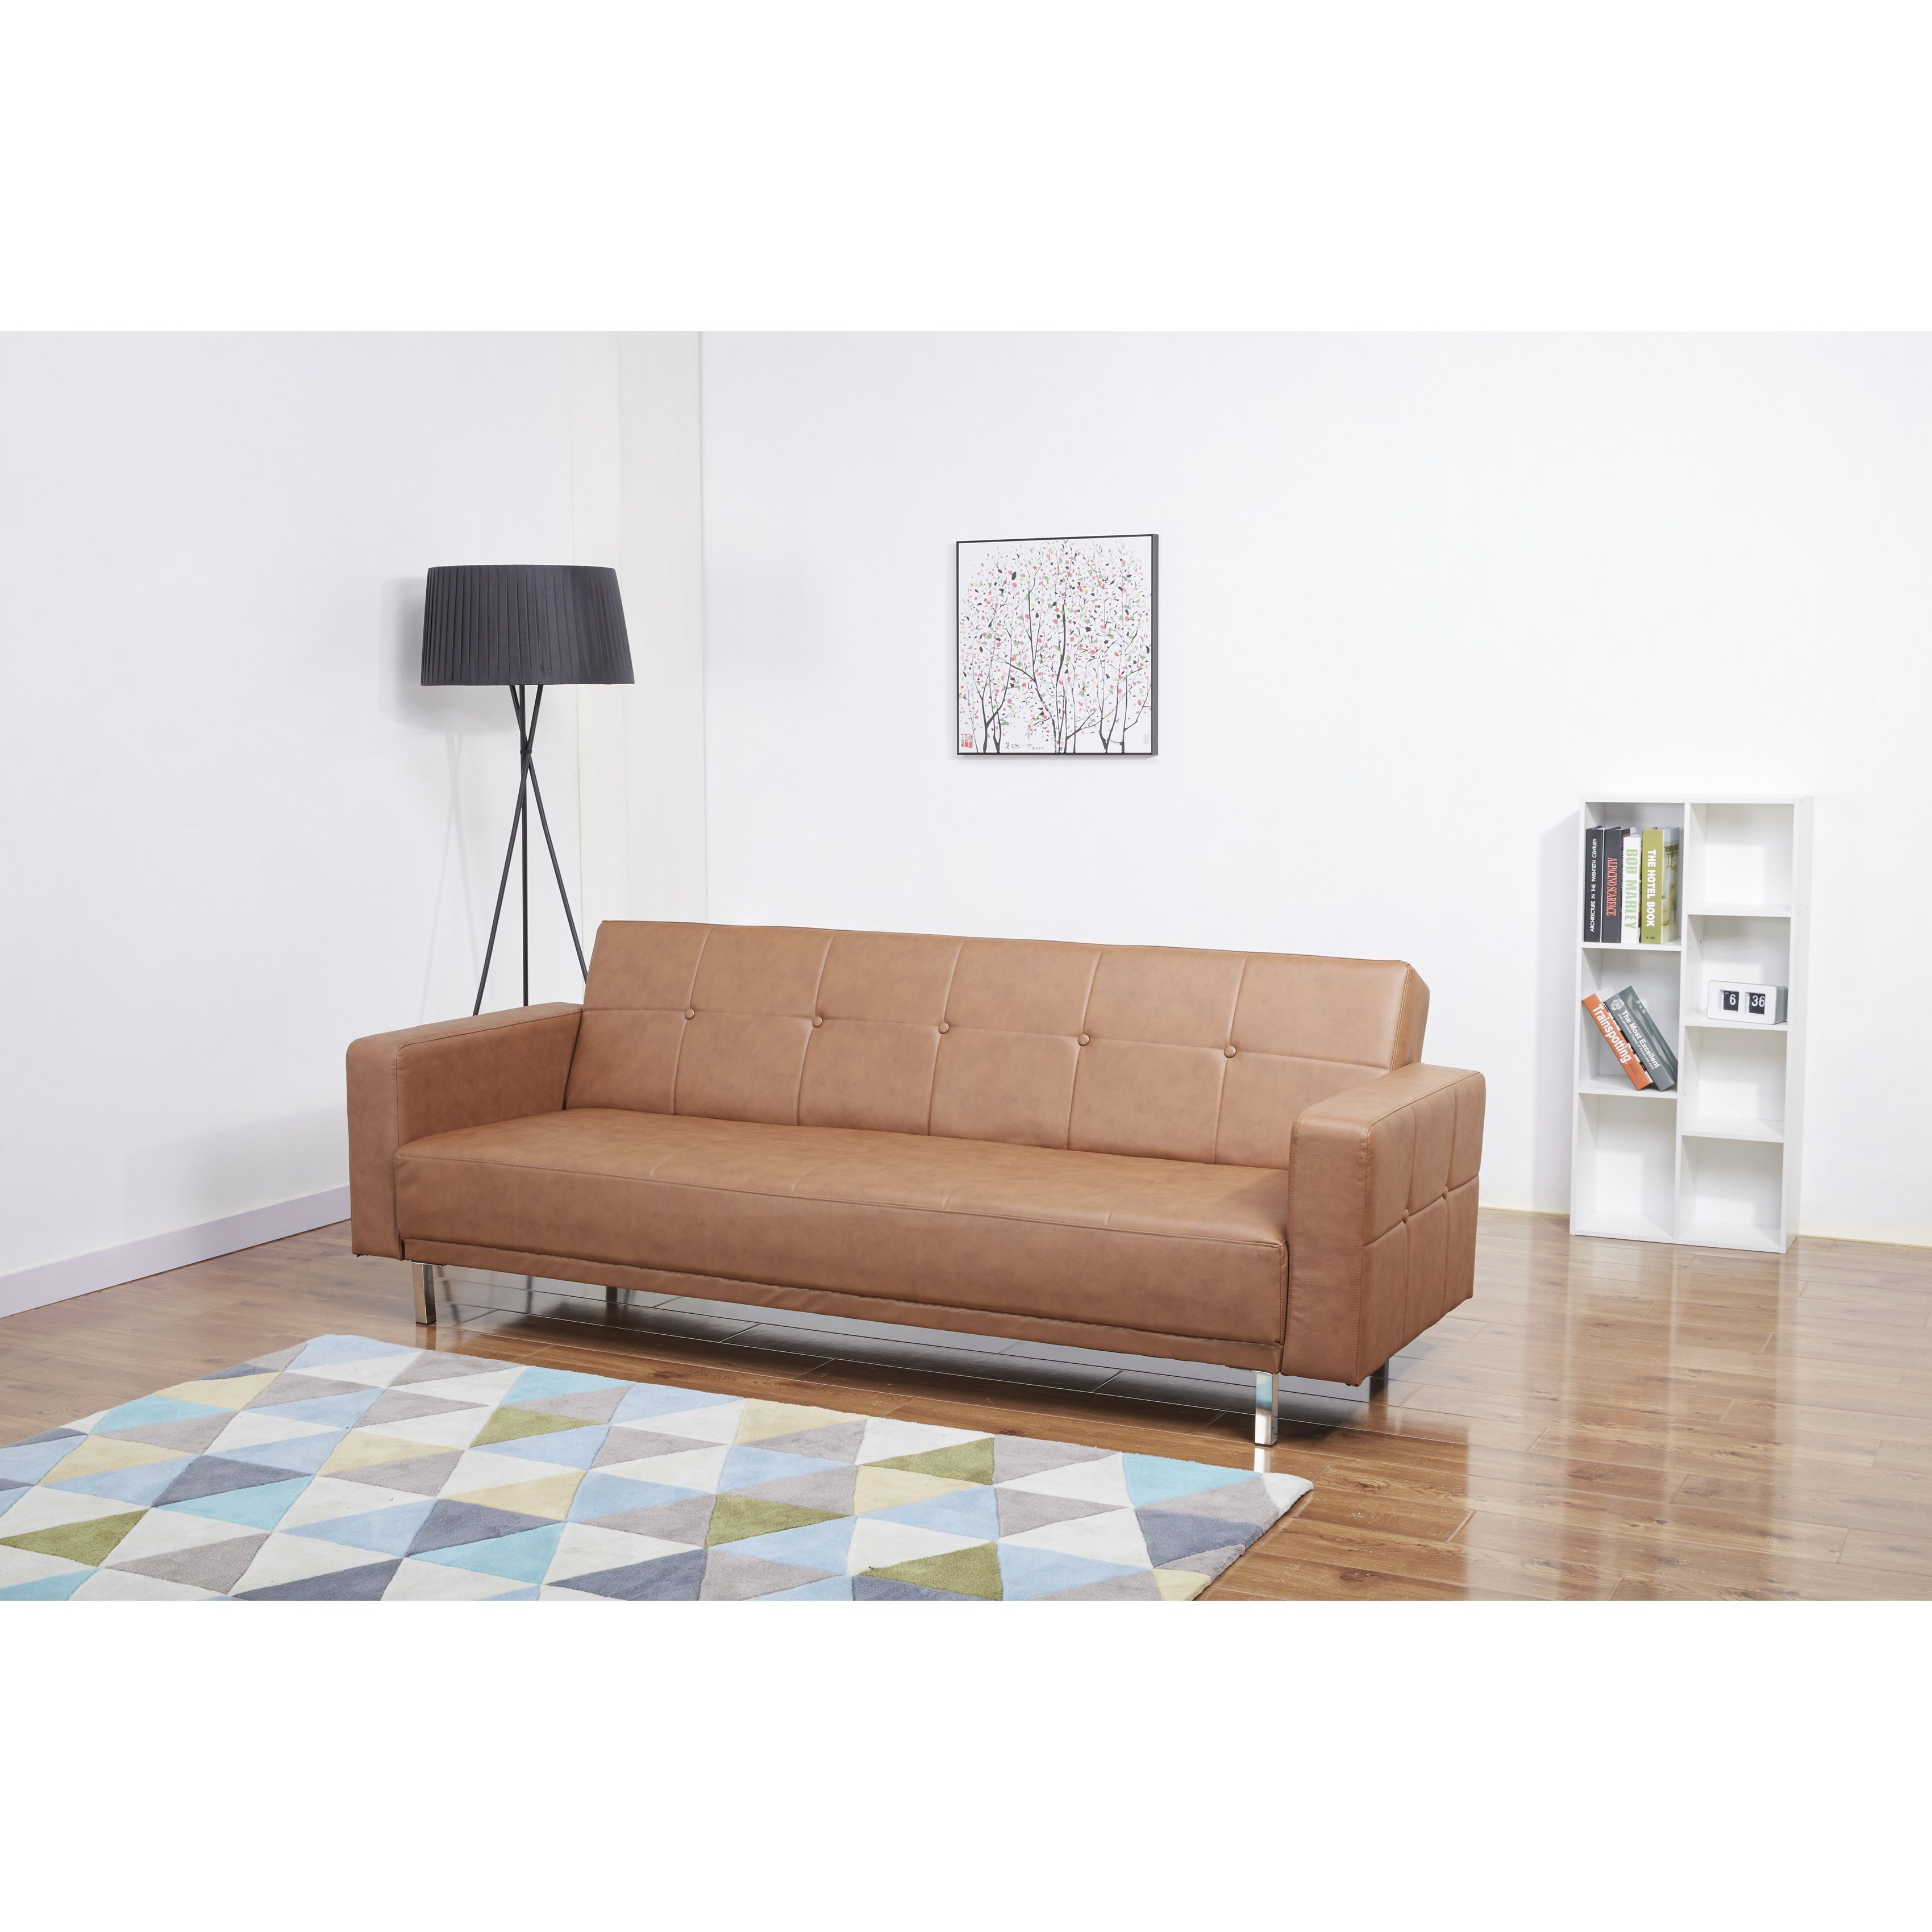 Cleveland Nutmeg Convertible Sofa Bed | Overstock.com Shopping - The ...